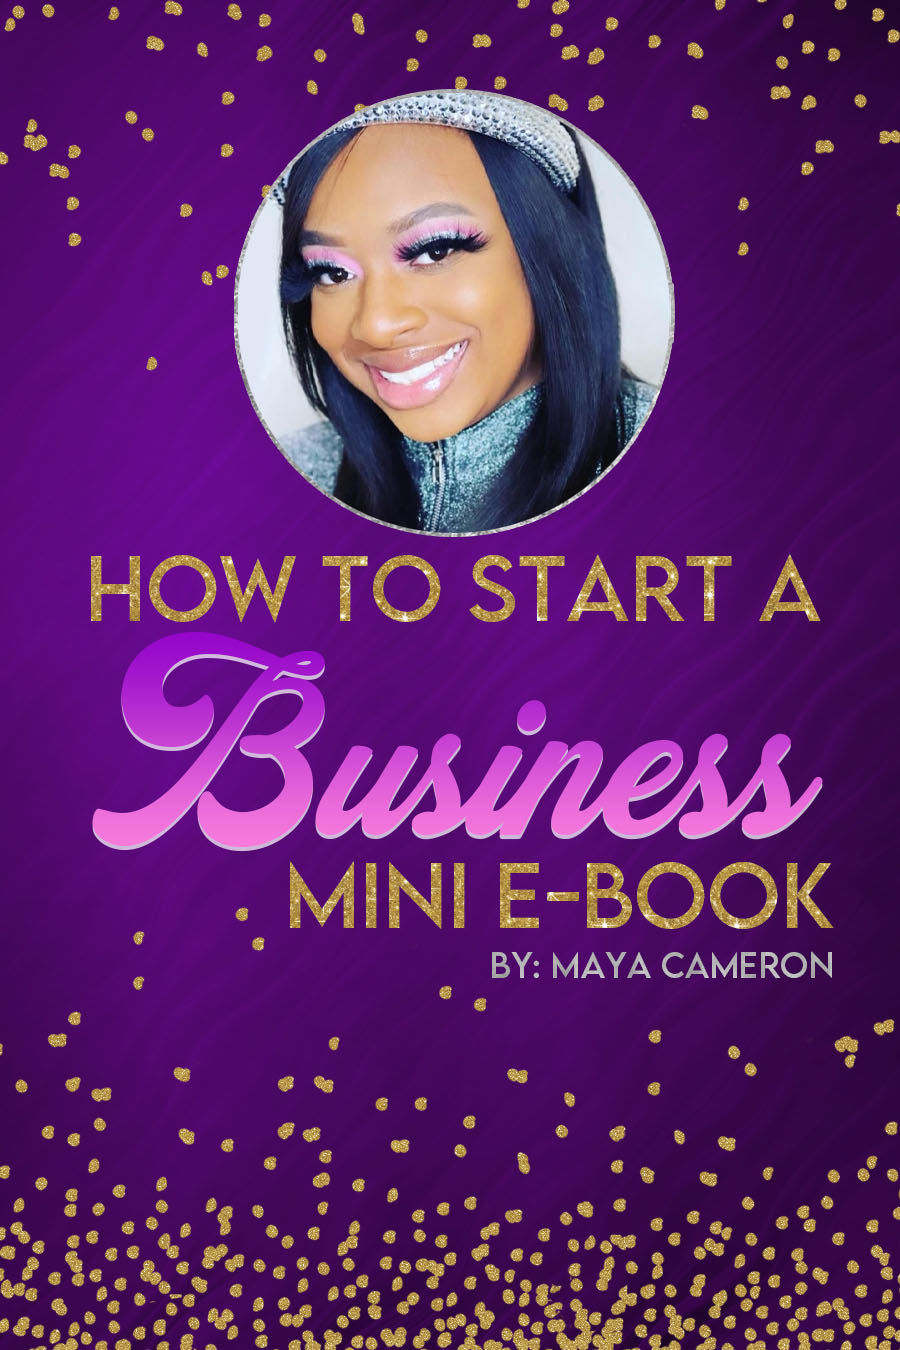 How To Start A Business Mini E-Book